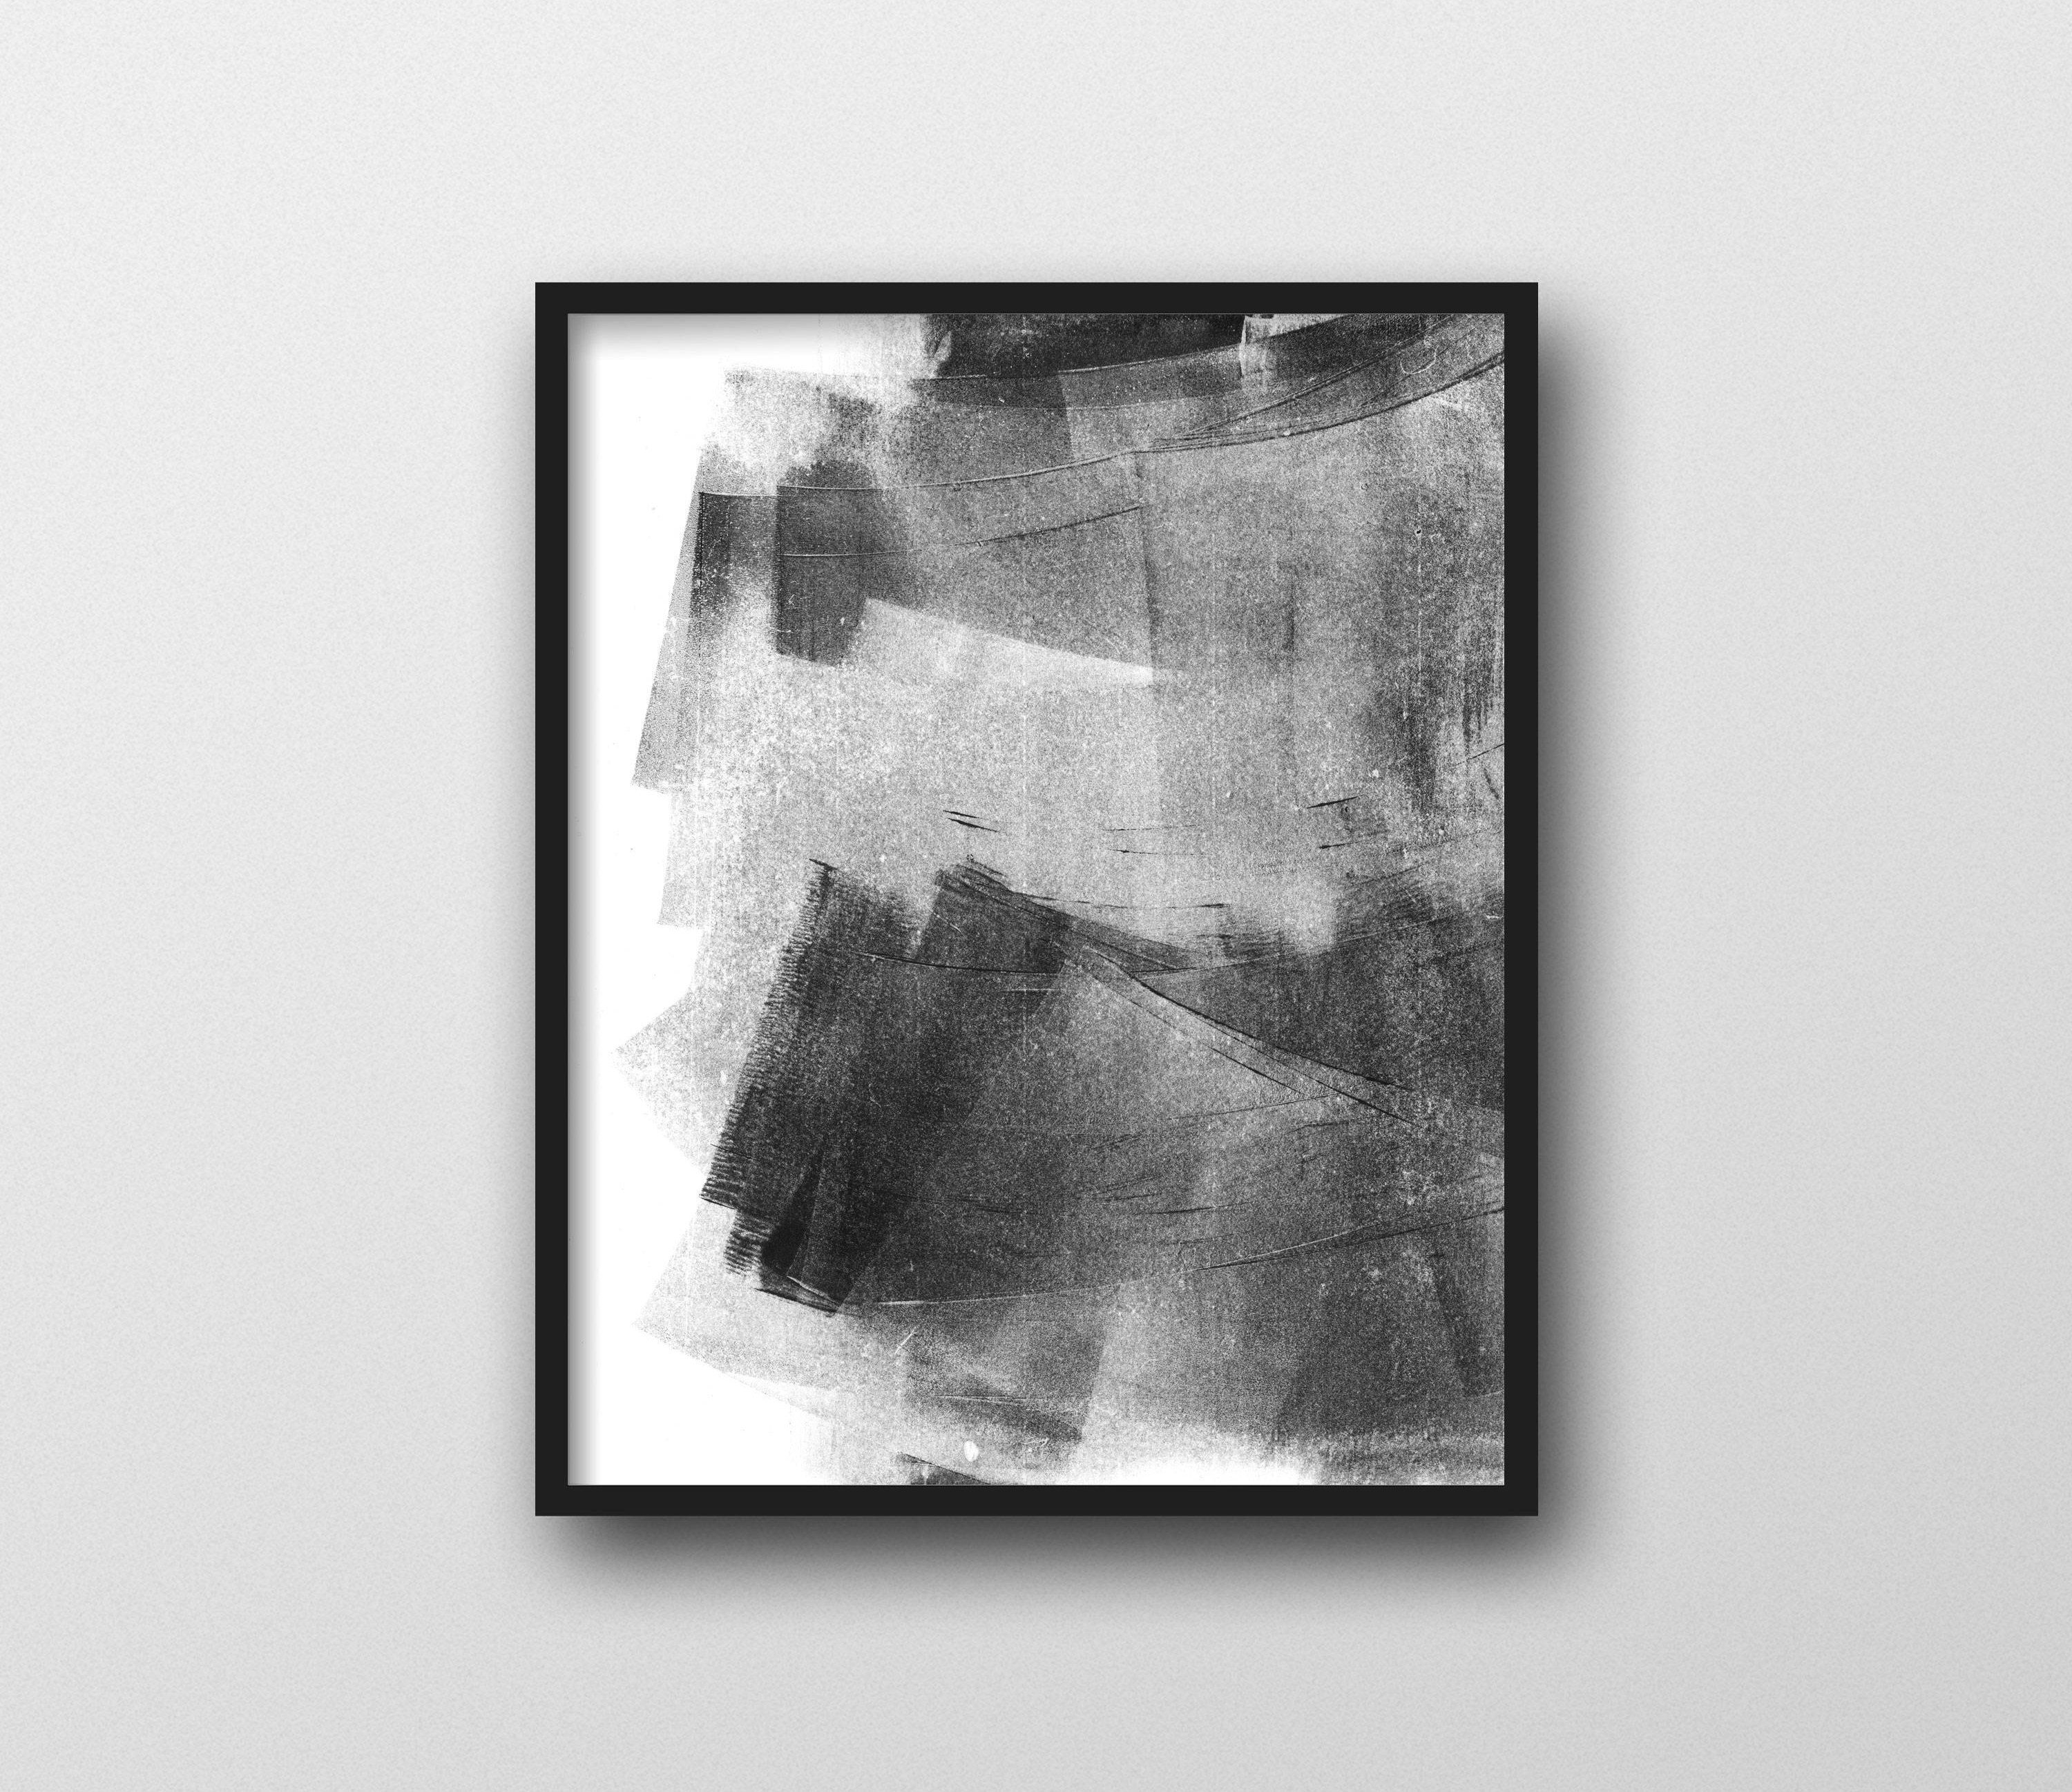 Abstract Art, Black And White Wall Art, Minimalist Painting, Black Pertaining To Most Recent Grey And White Wall Art (View 19 of 20)